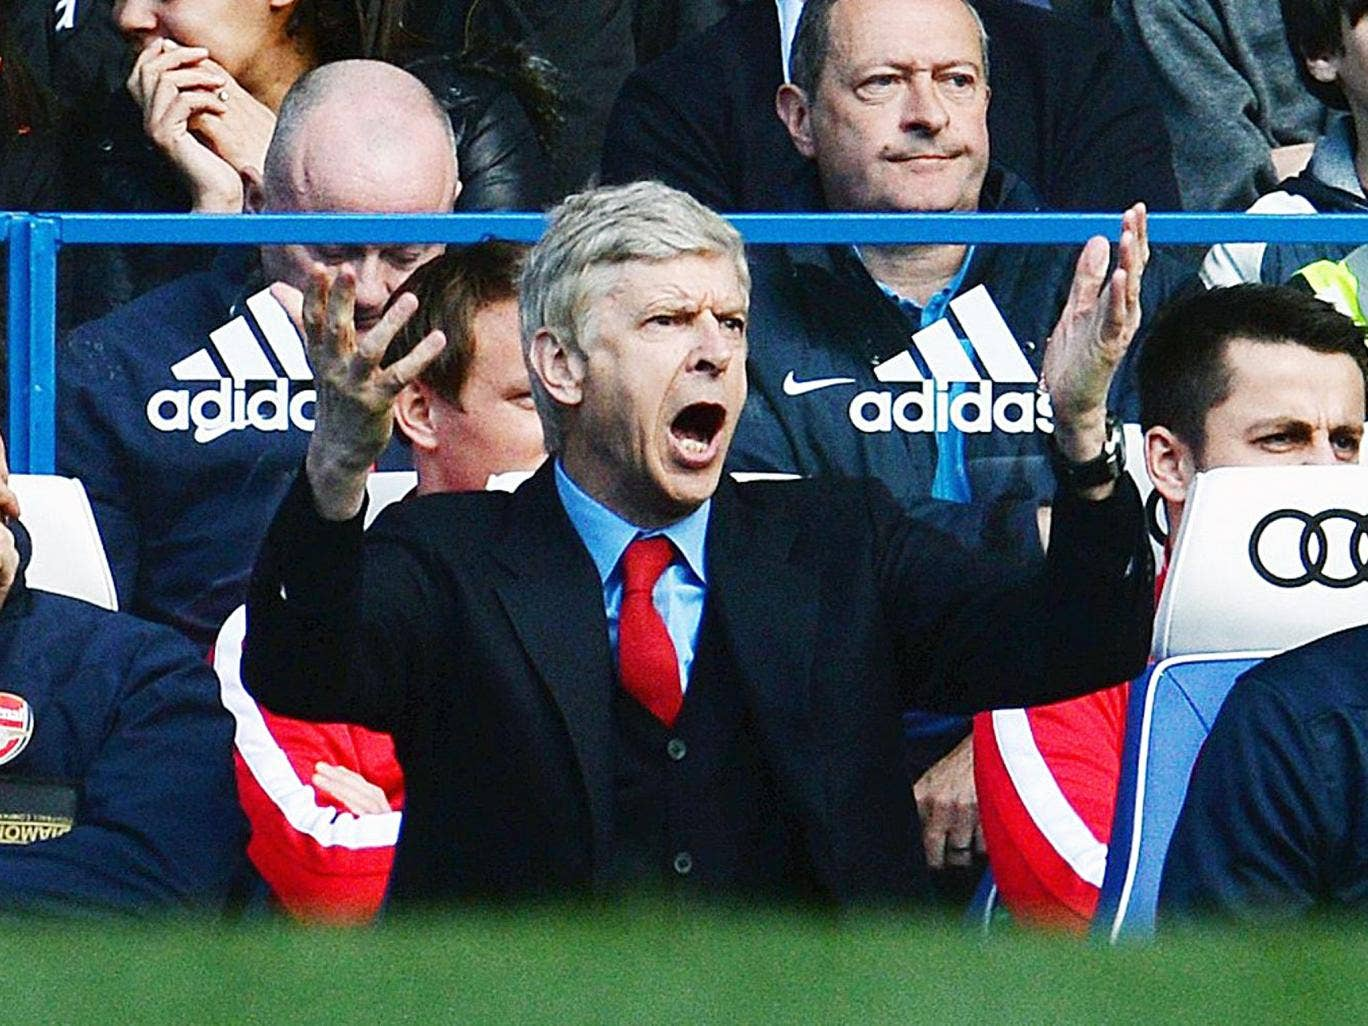 Arsene Wenger gestures from the dugout at Stamford Bridge during Arsenal's 6-0 defeat to Chelsea